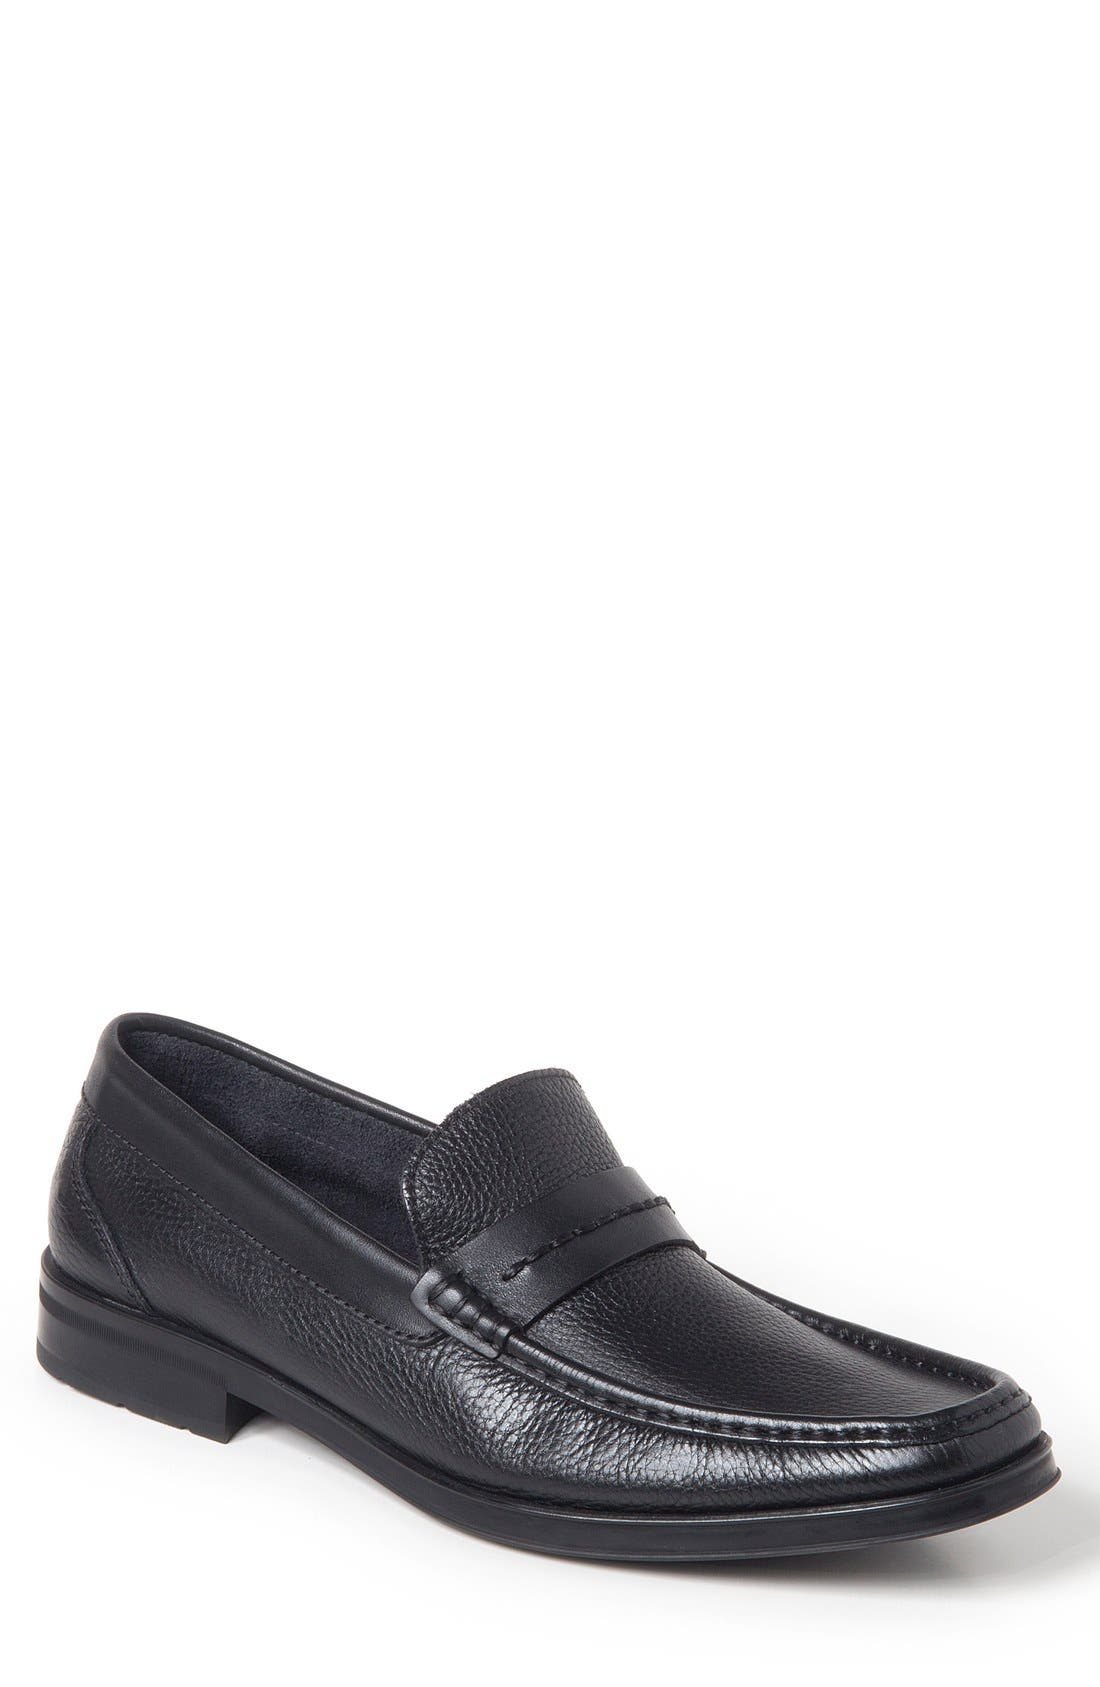 Duero Loafer,                             Main thumbnail 1, color,                             BLACK LEATHER